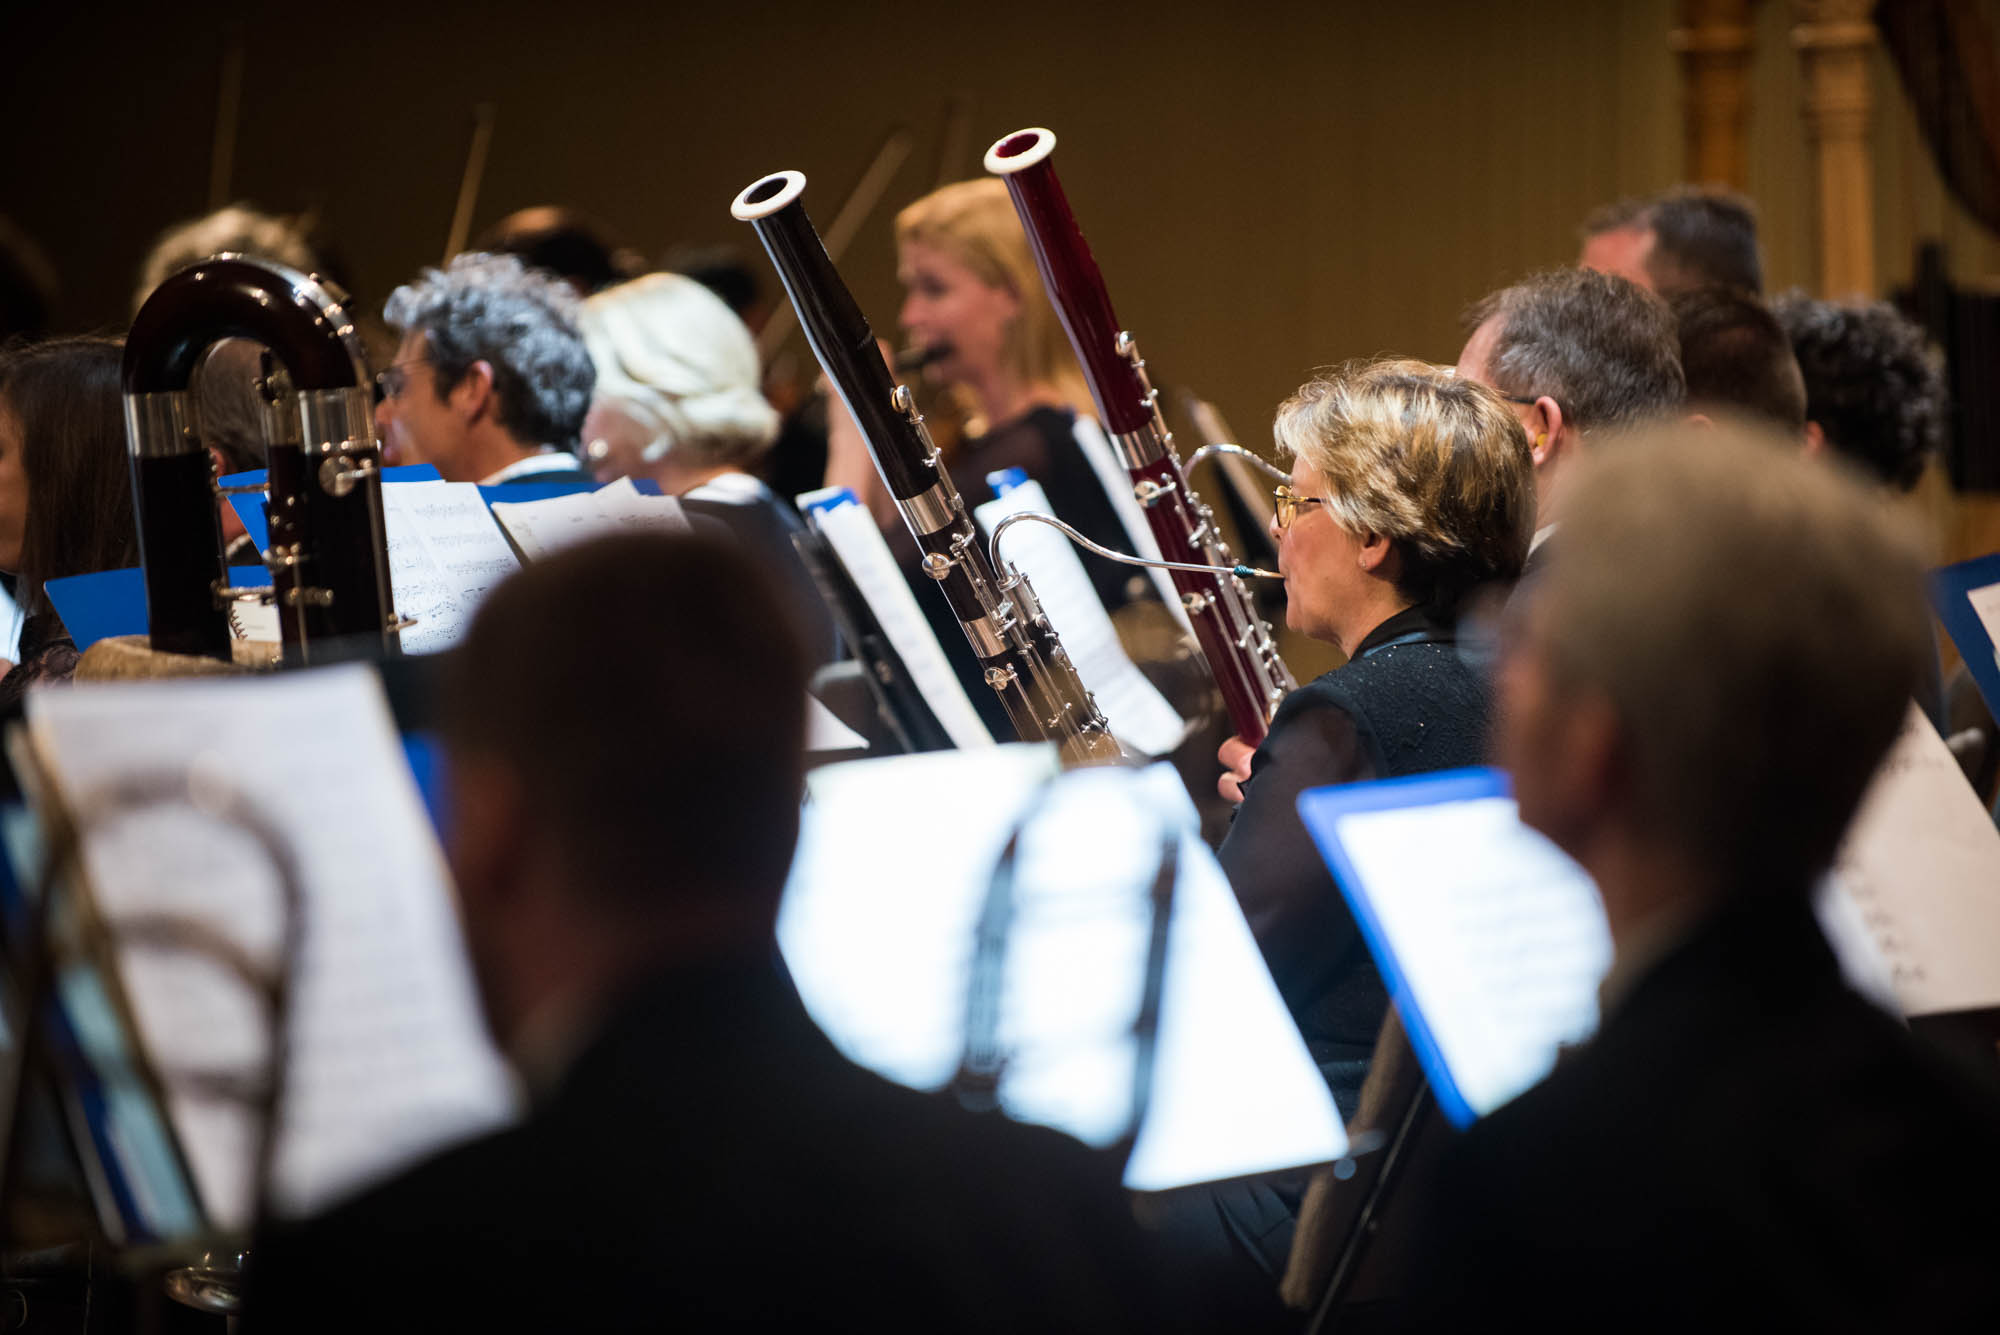 The woodwinds section of the Minnesota Orchestra.